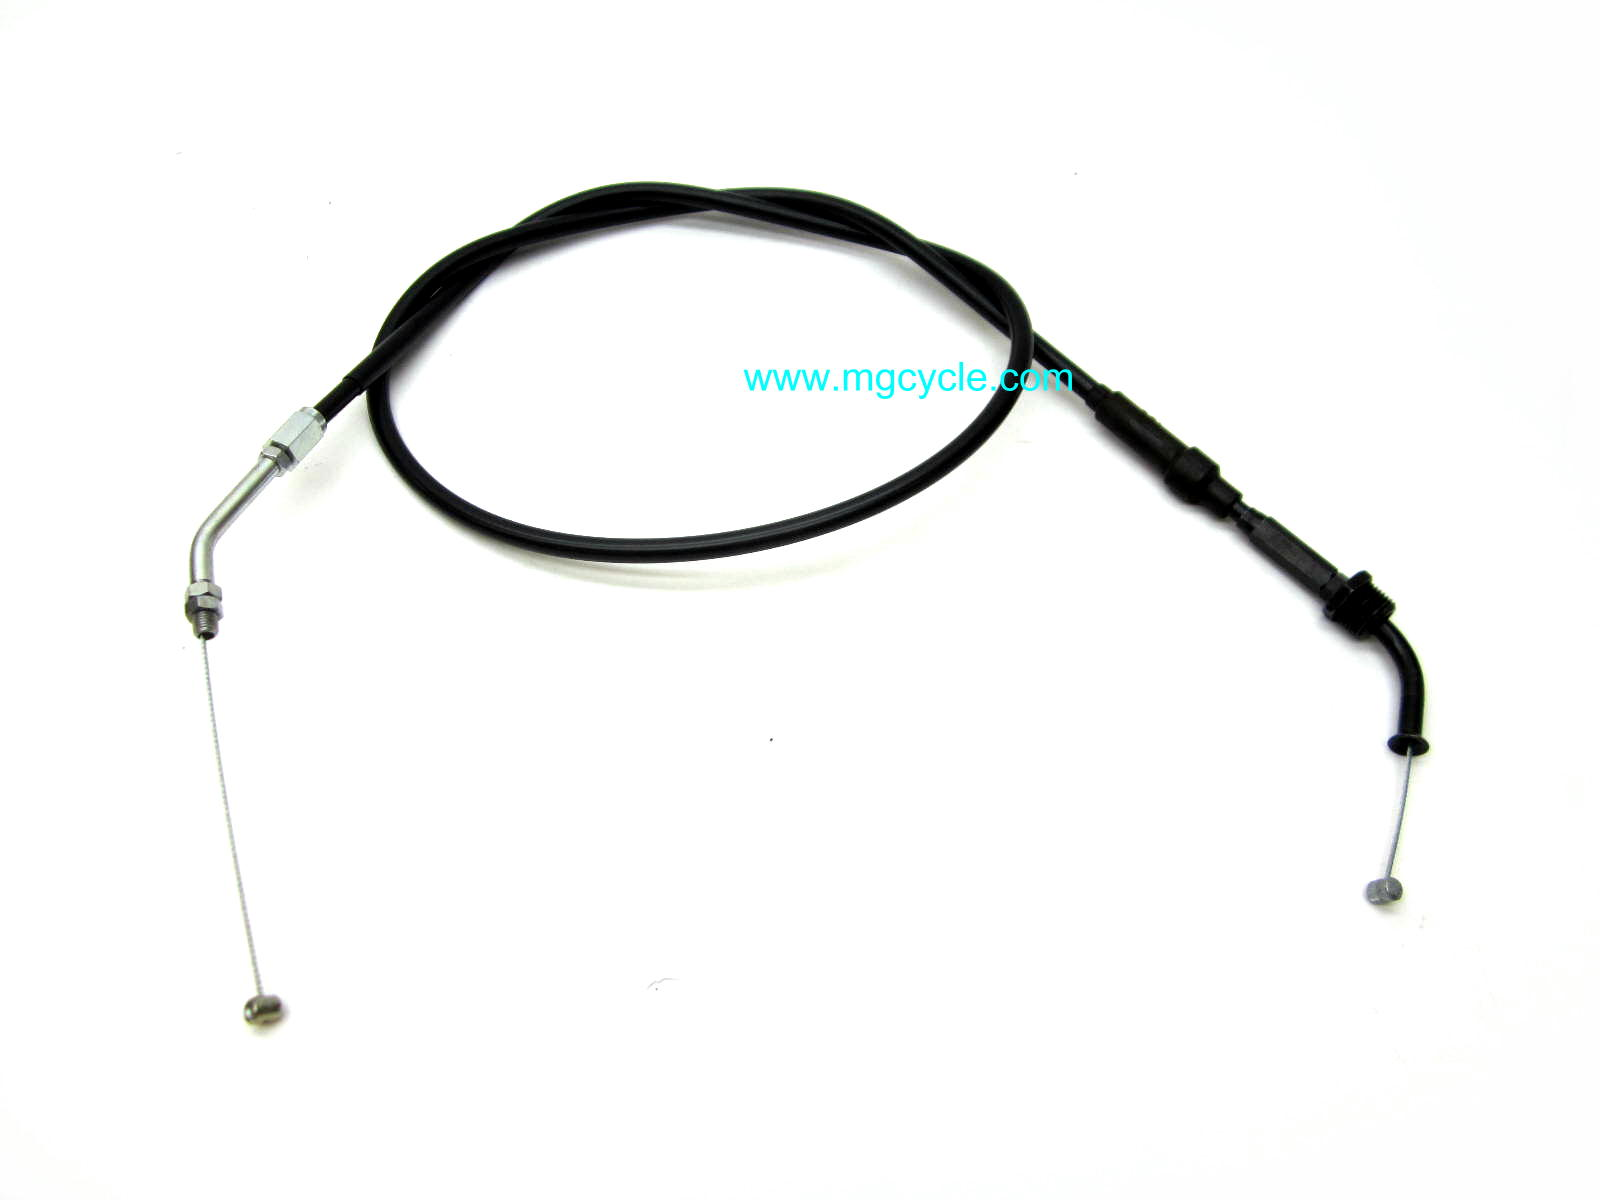 BARGAIN BIN:Nevada Classic 750 IE throttle cable 2004-2009